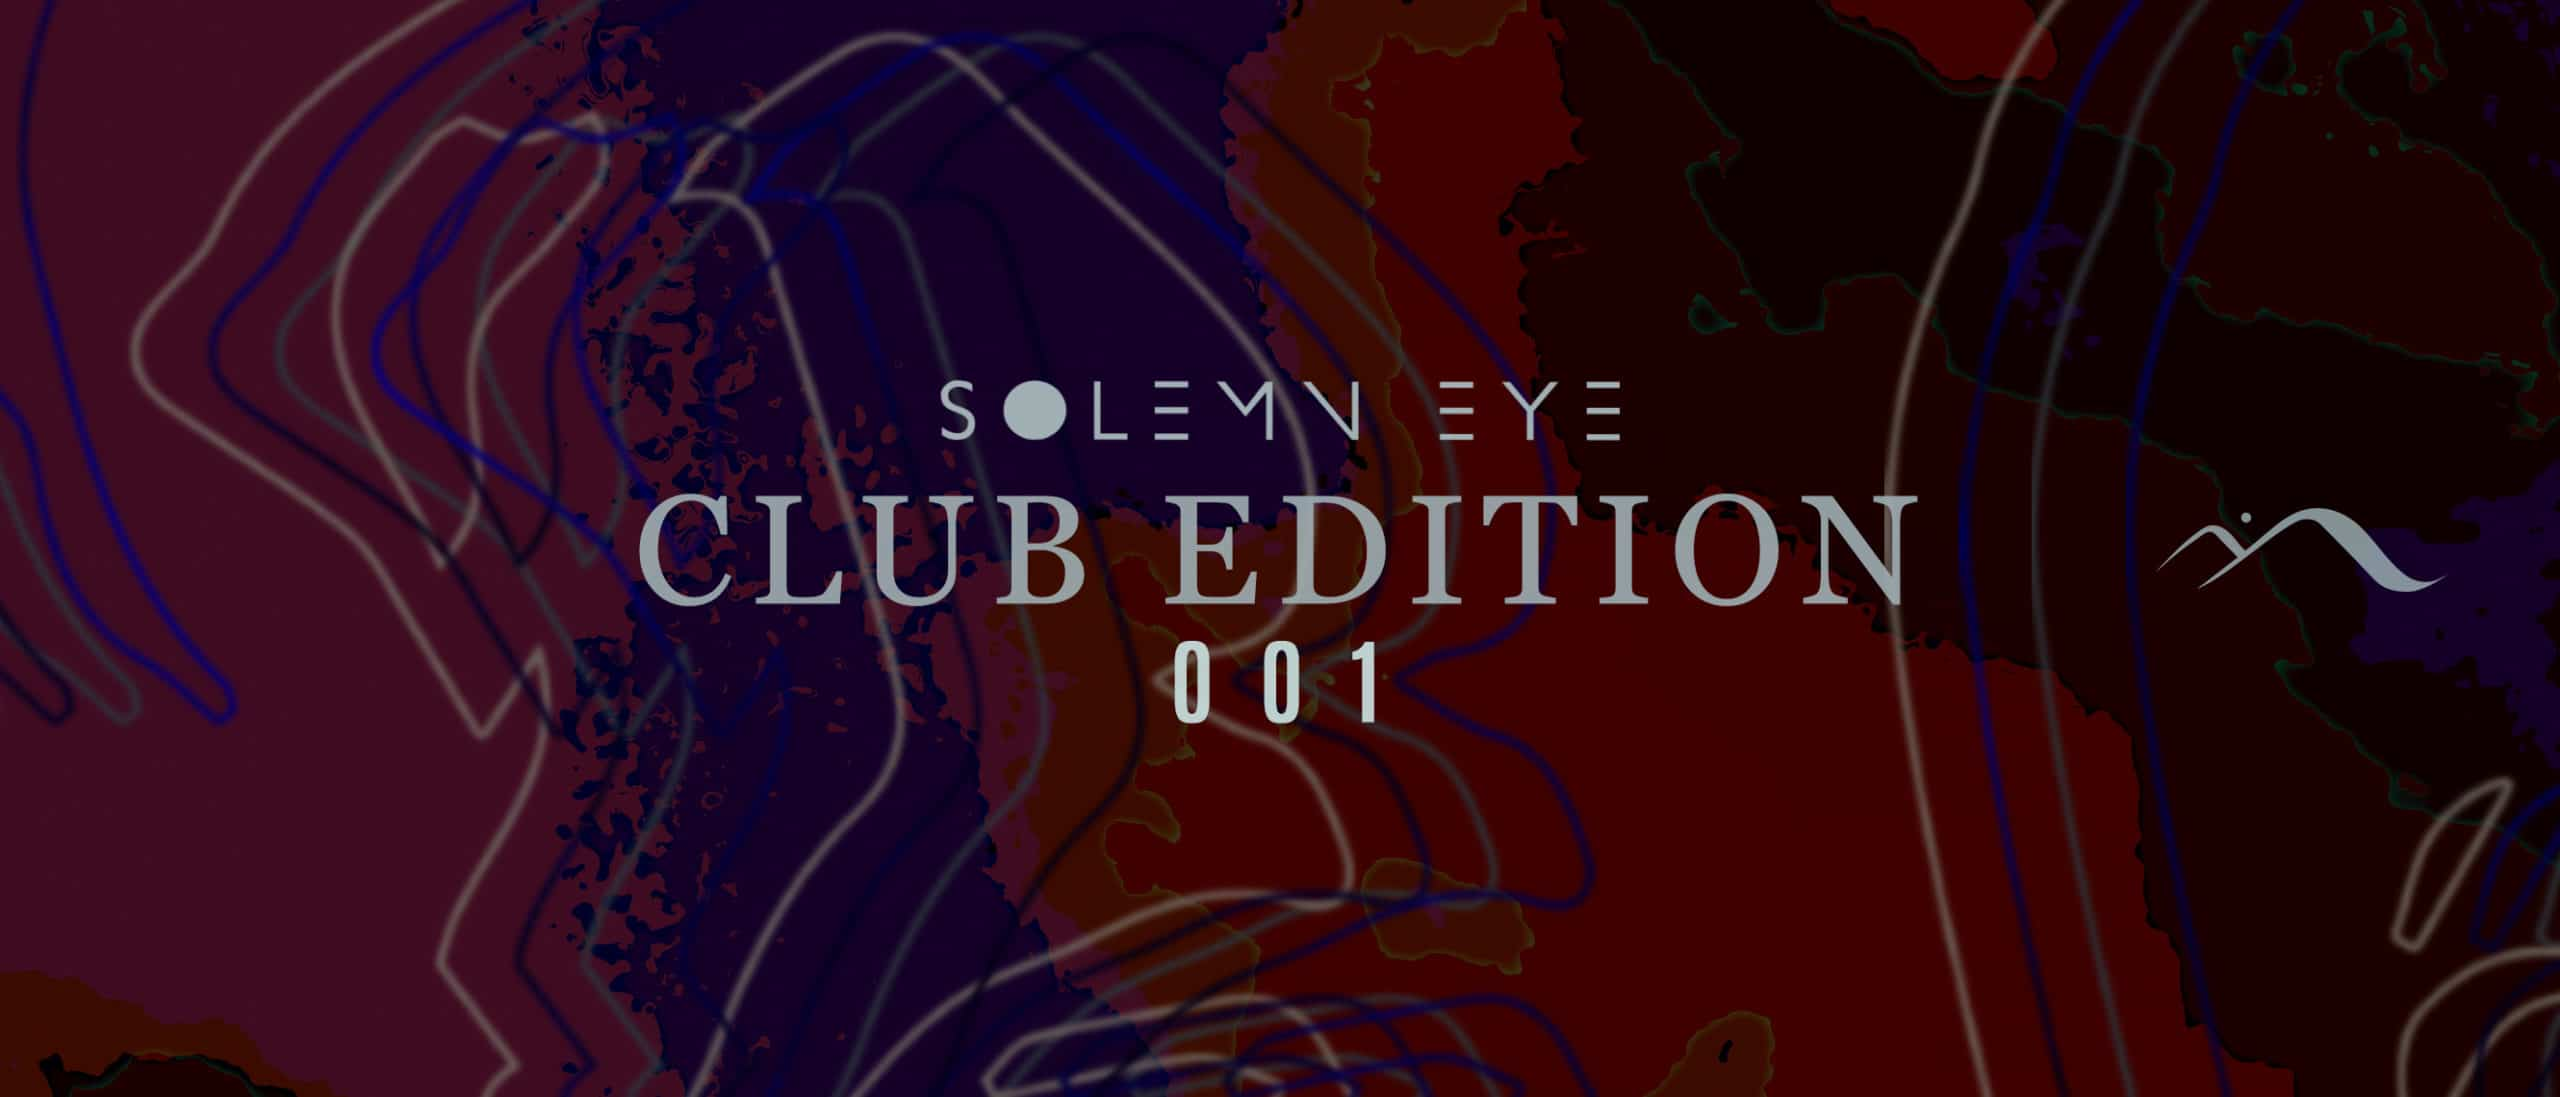 SH003 solemn eye club edition 001